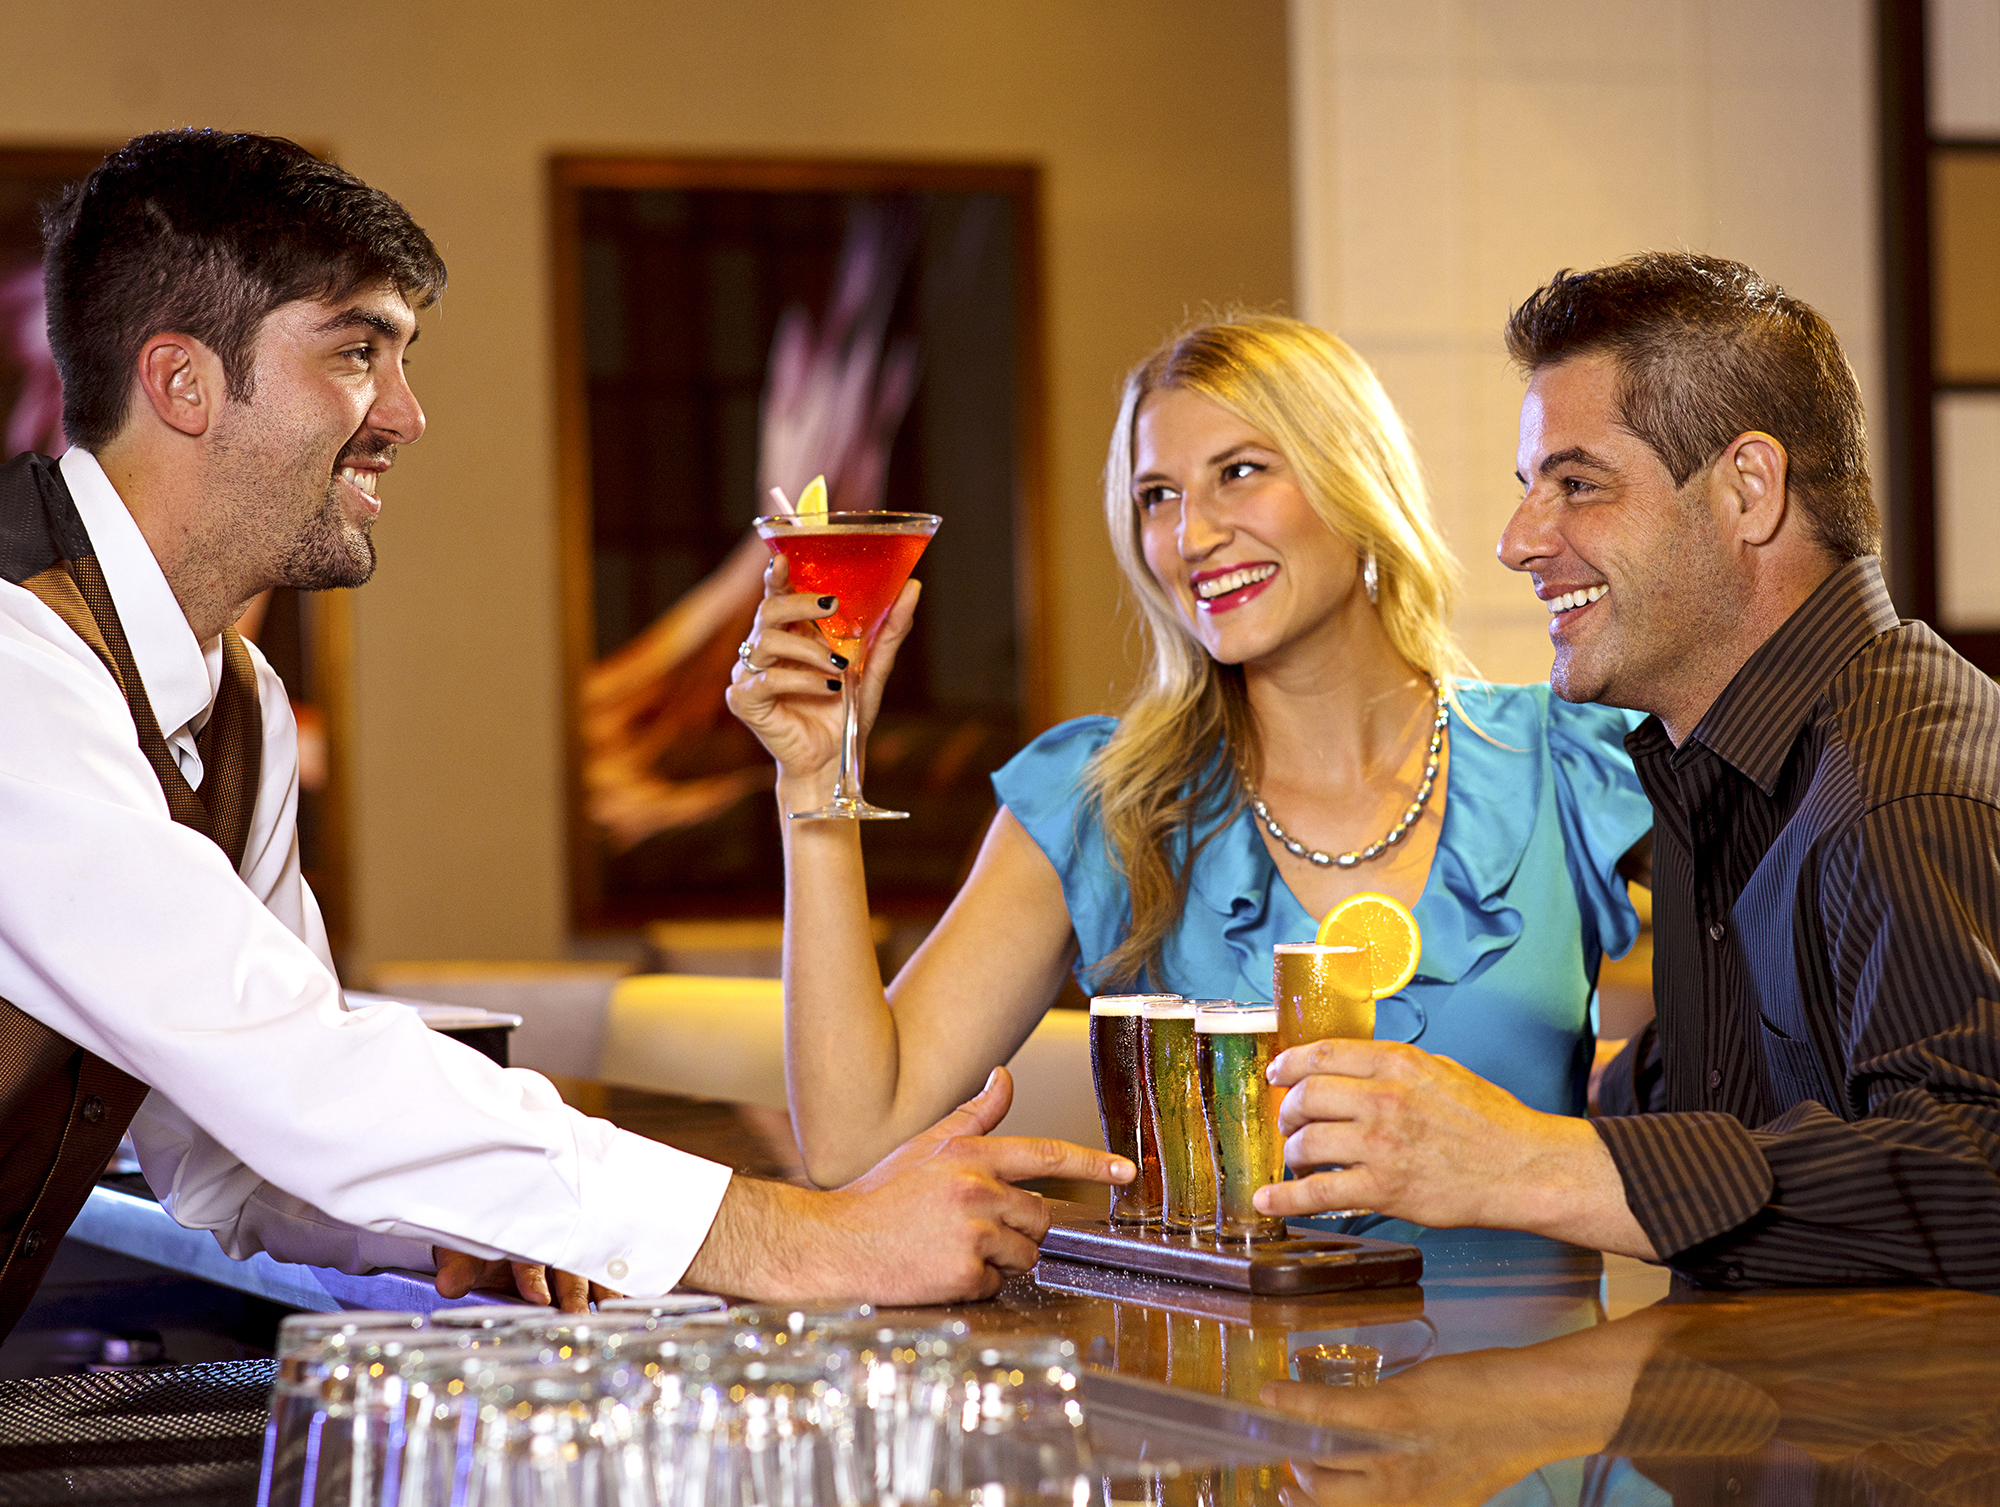 The Spotted Horse Tavern & Dining Parlor opened at Evangeline Downs Racetrack Casino Hotel in September 2015.